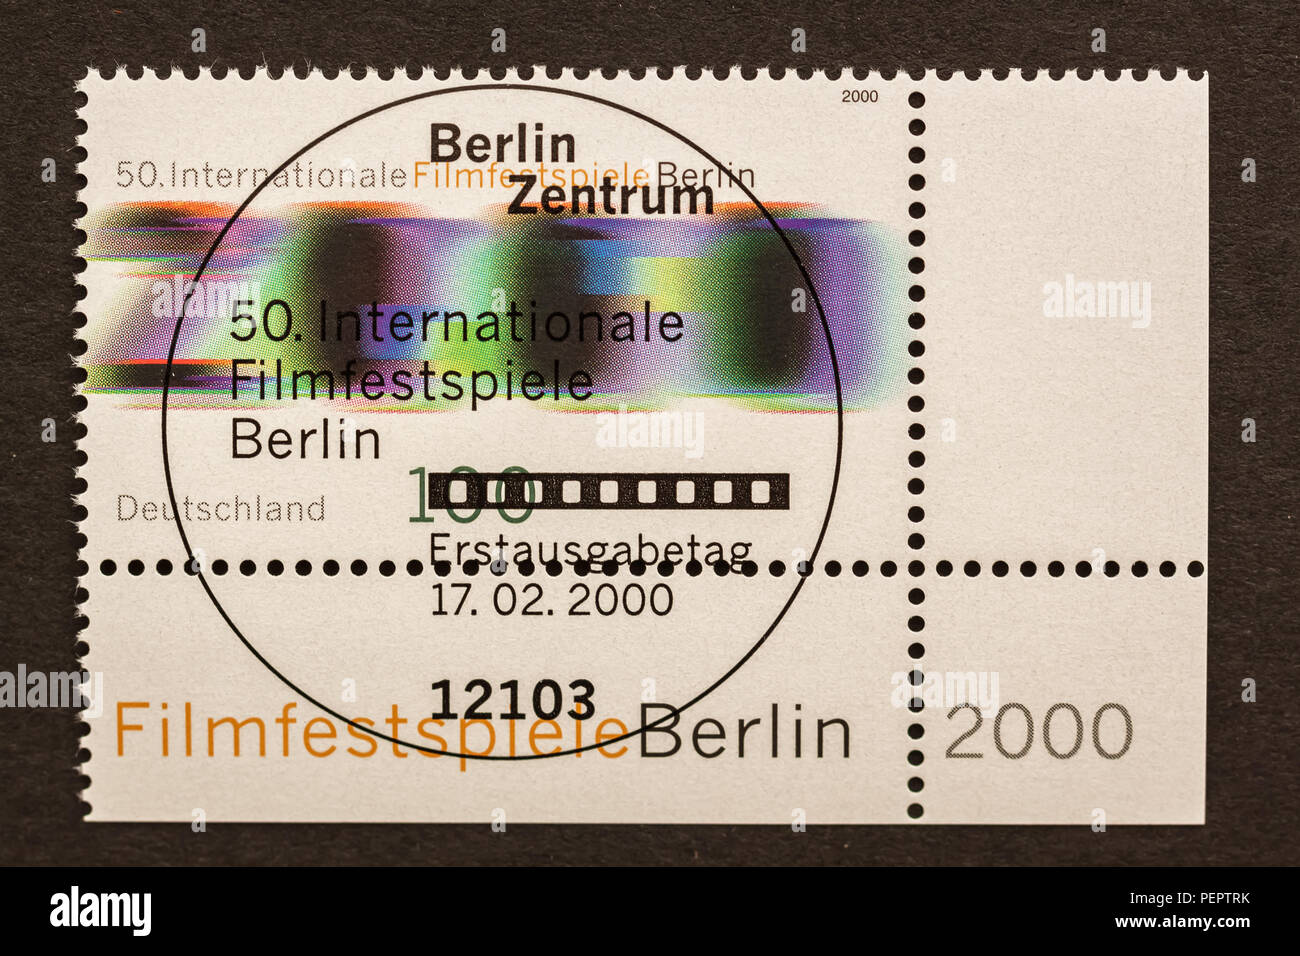 Postage stamp with first day of issue postmark to commemorate Film Festival 2000 in Berlin, Germany. - Stock Image